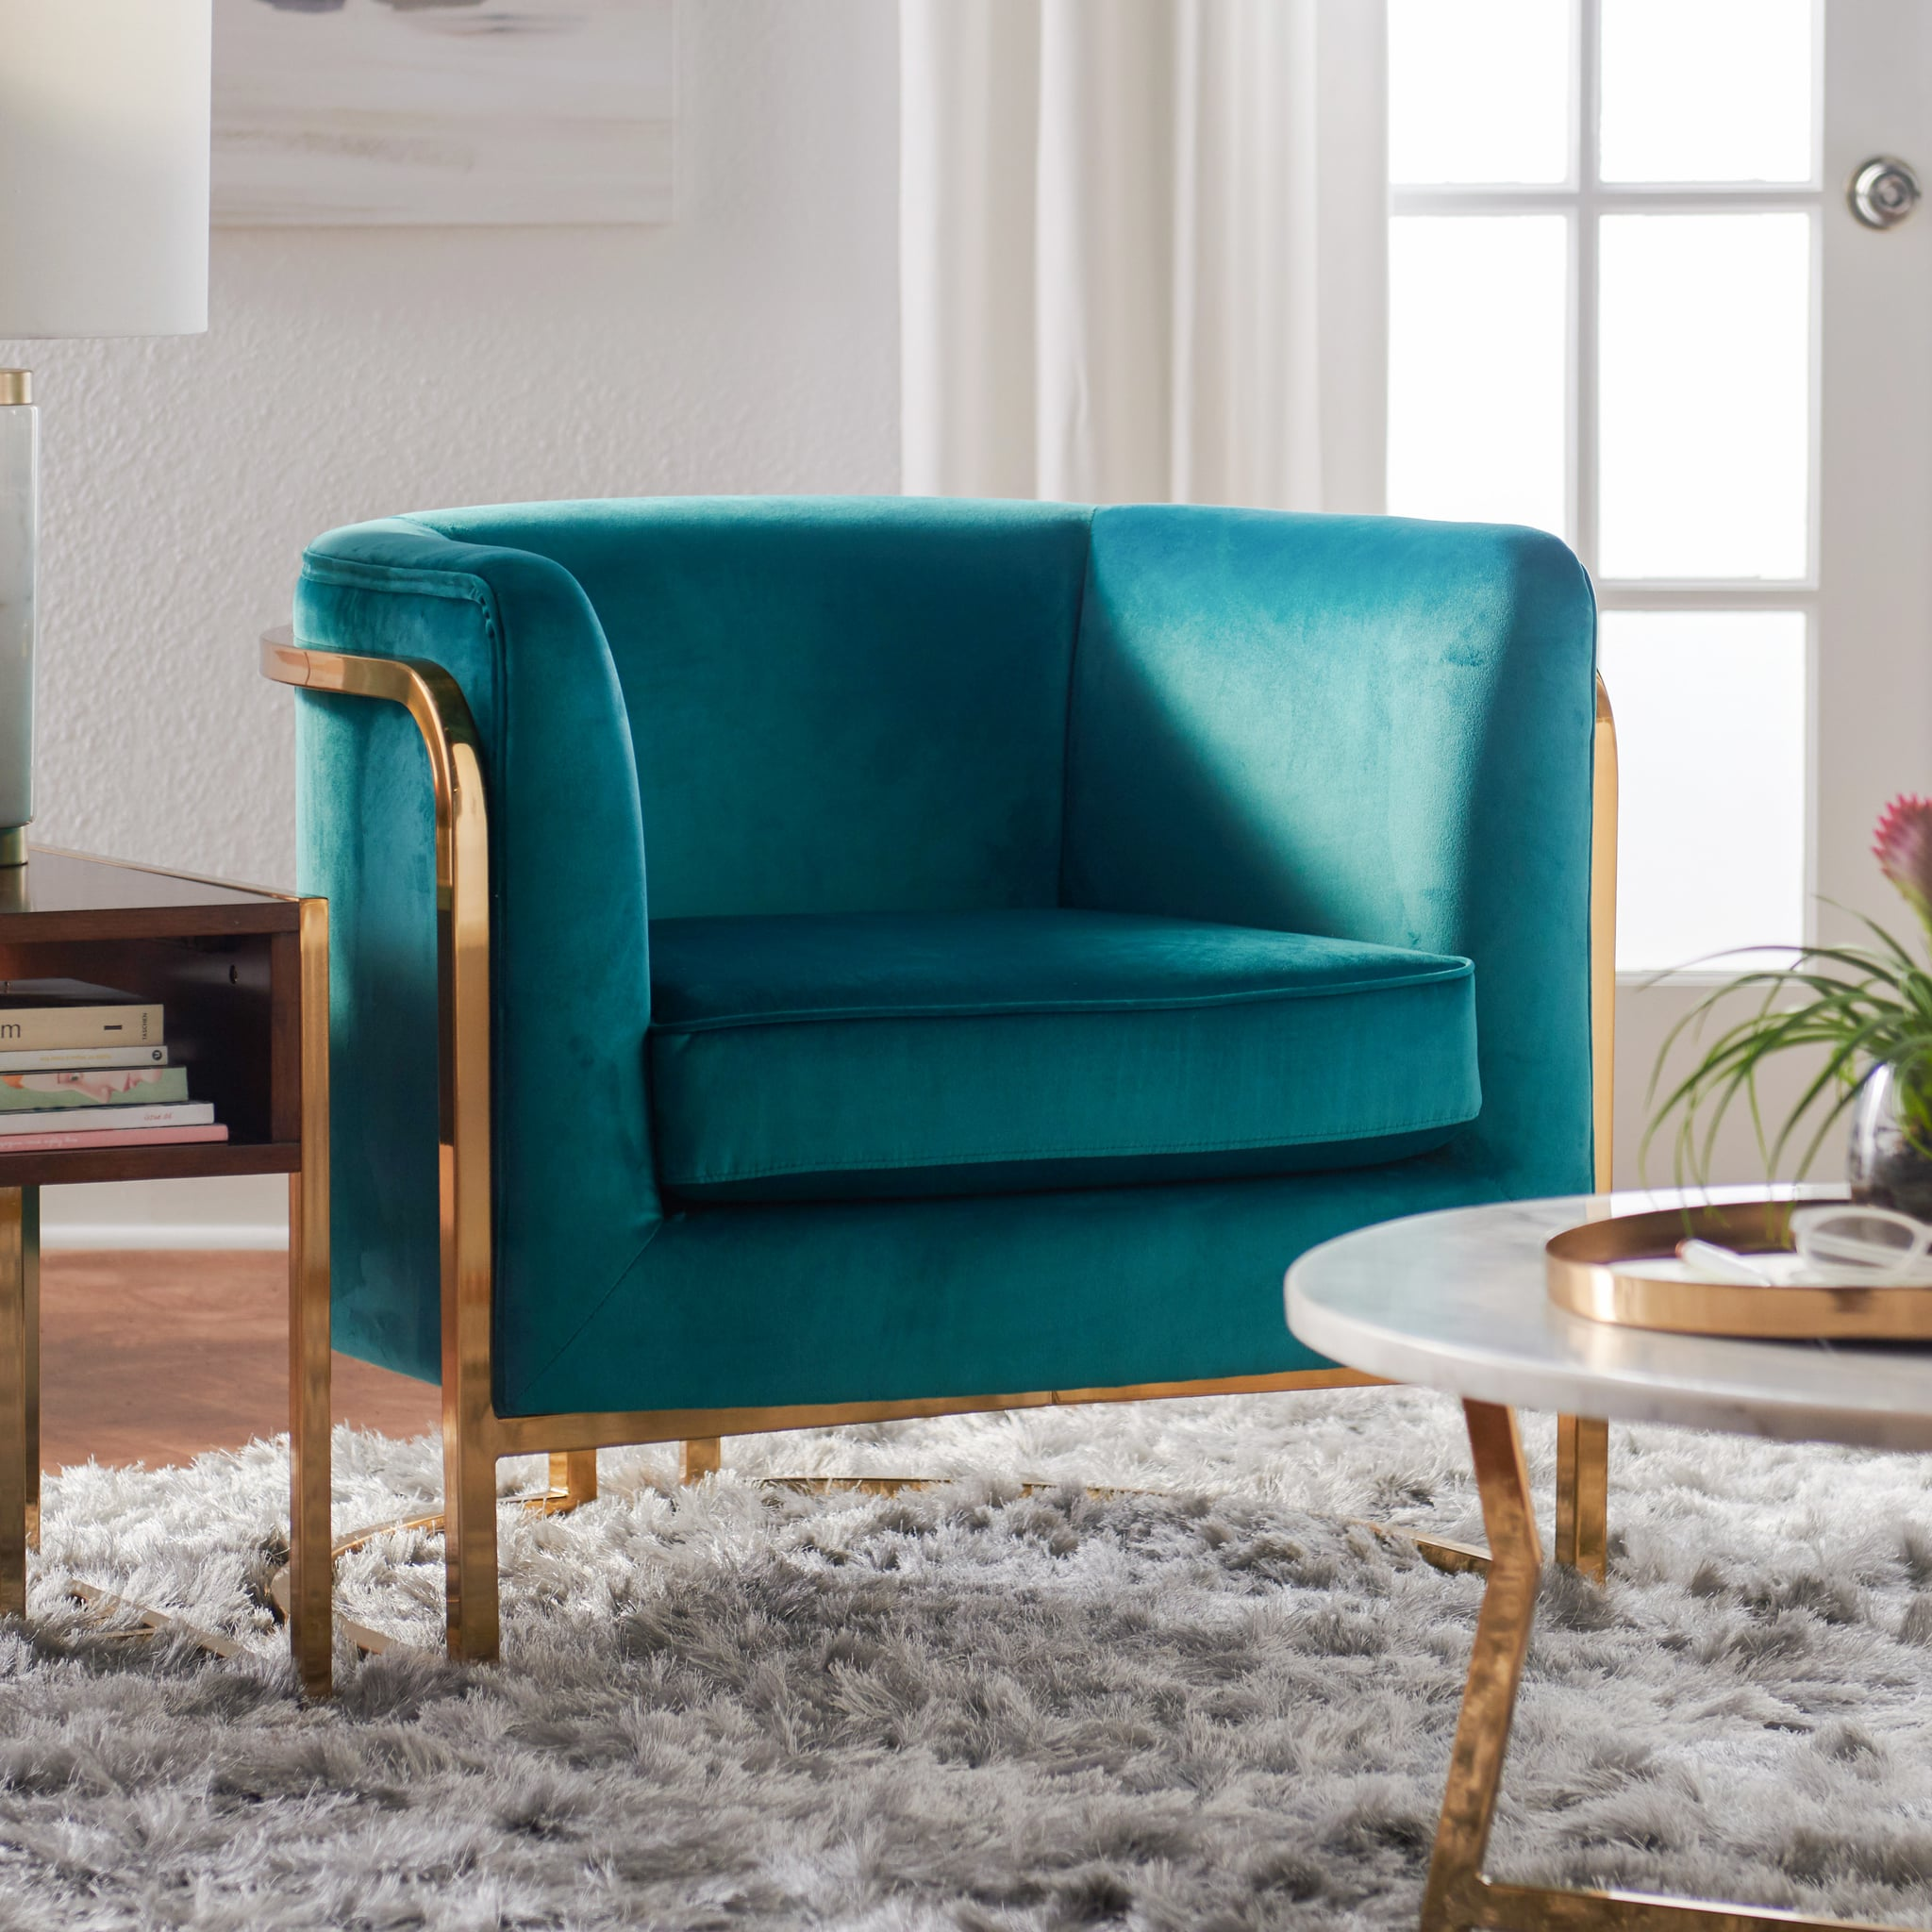 Best Living Room Furniture From Walmart | POPSUGAR Home